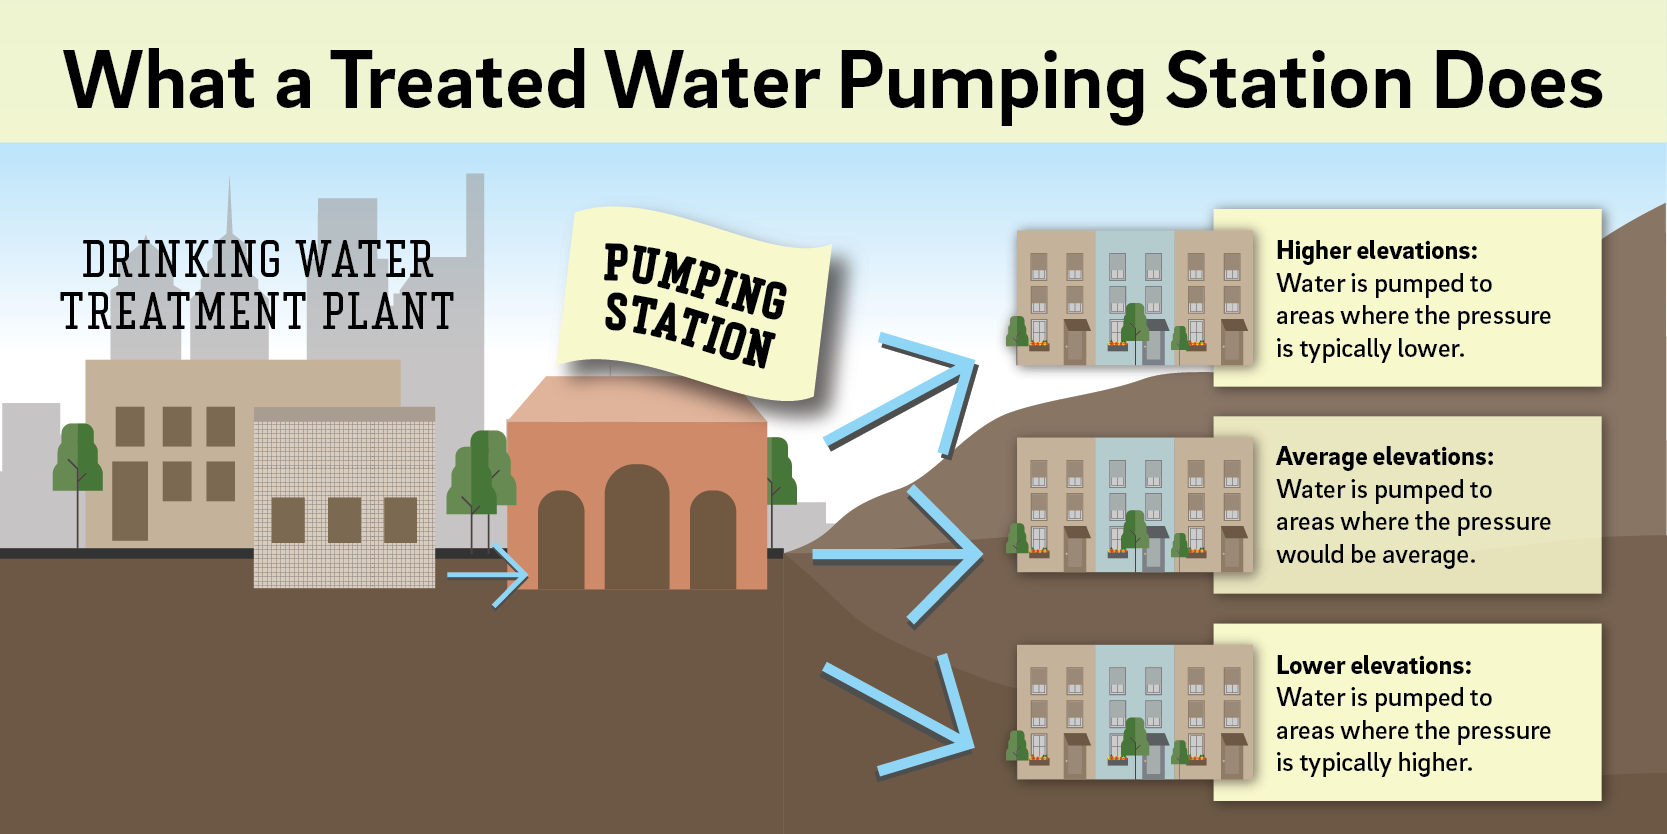 'What a Treated Water Pumping Station Does - pumping stations push water into the pipes supplying different areas of the city to ensure there is enough water pressure everywhere, including at higher elevations (where pressure is typically lower), average elevations (where pressure is typically average), and lower elevations (where pressure is typically higher).